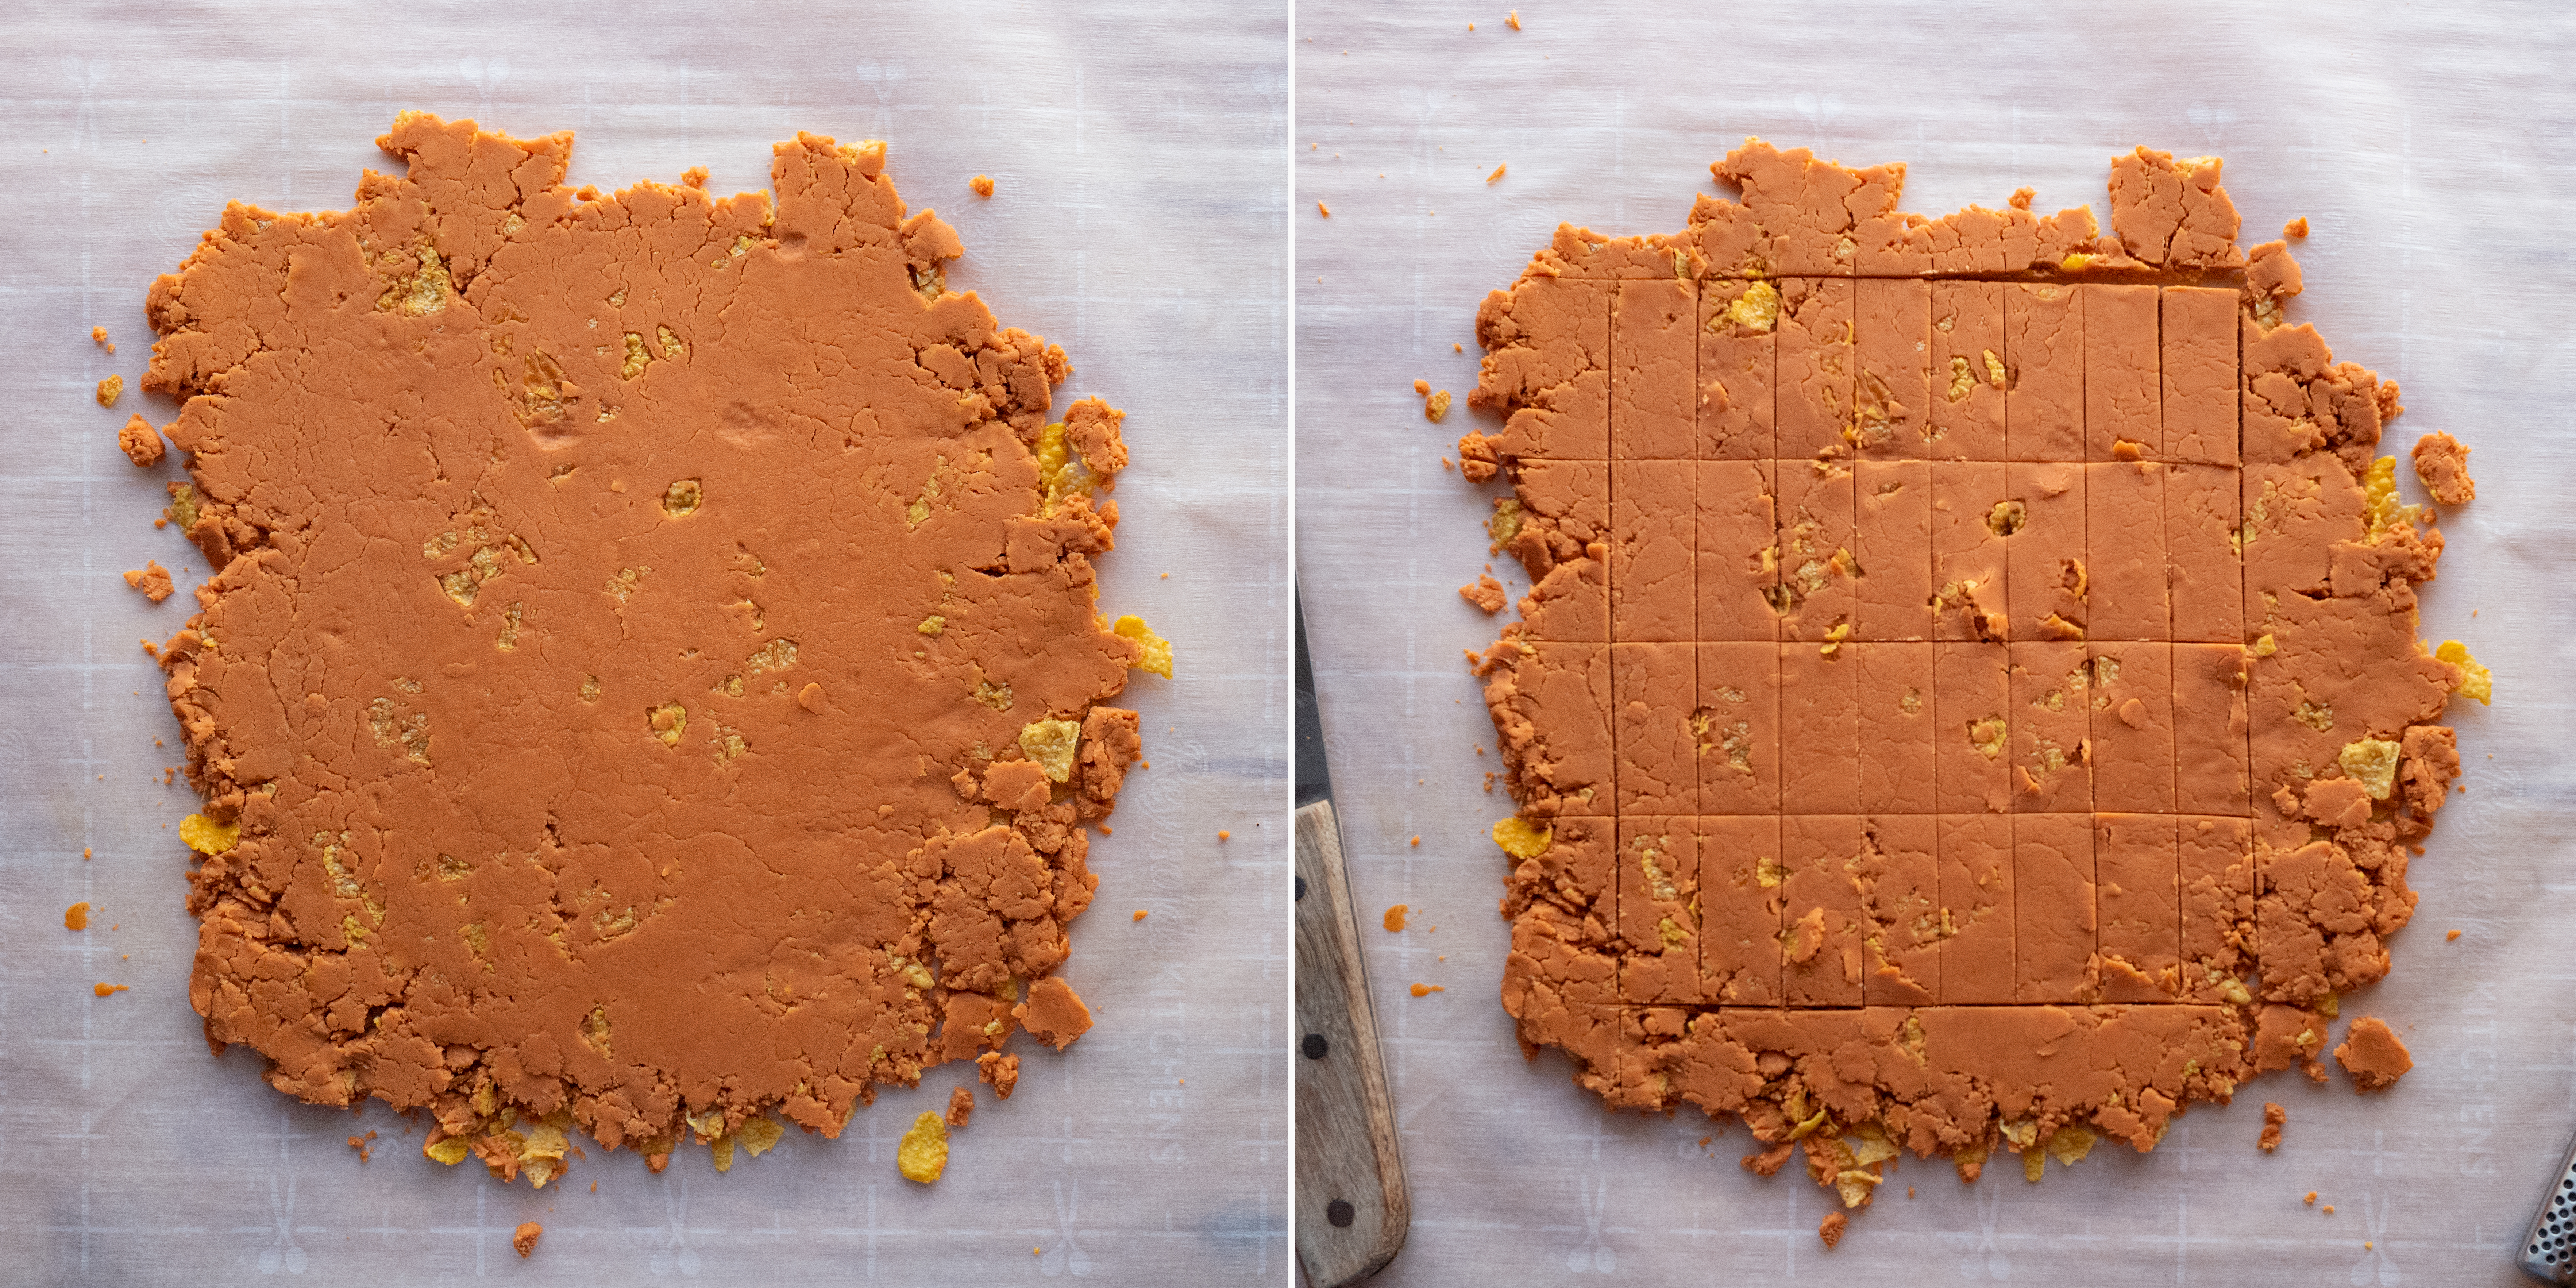 There's two photos side by side. In the first photo, the rolled out filling in a rough square. In the second photo, slices have been made evenly across the mixture. These slices match the proportions and dimensions of our mold. They will be separated and made into our candy bar filling.